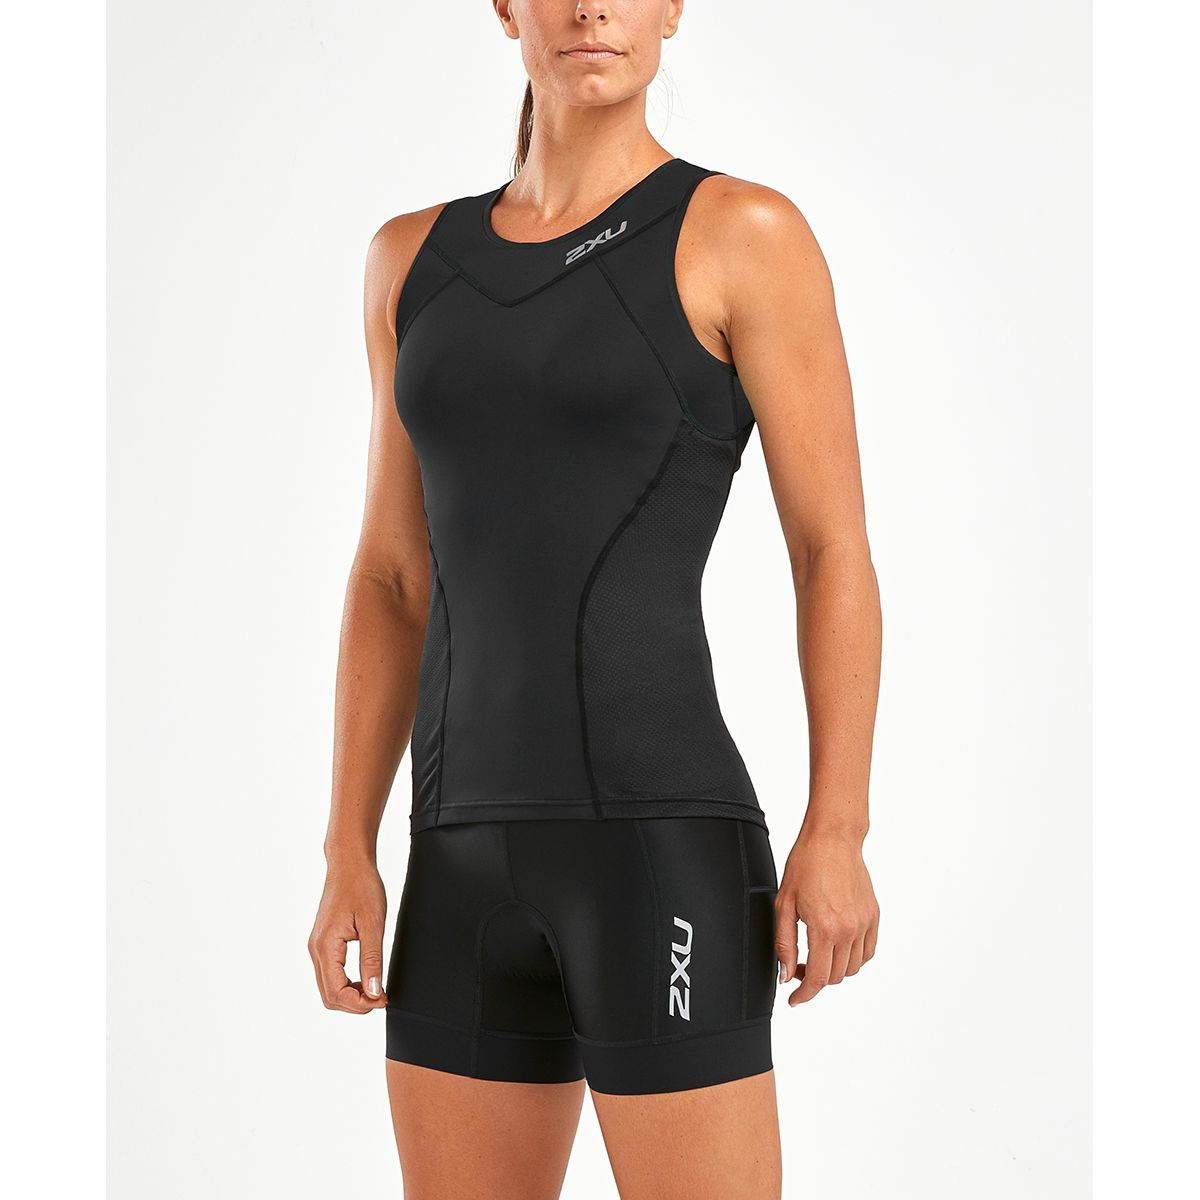 2XU ACTIVE TRI SINGLET for women | Tri-beklædning